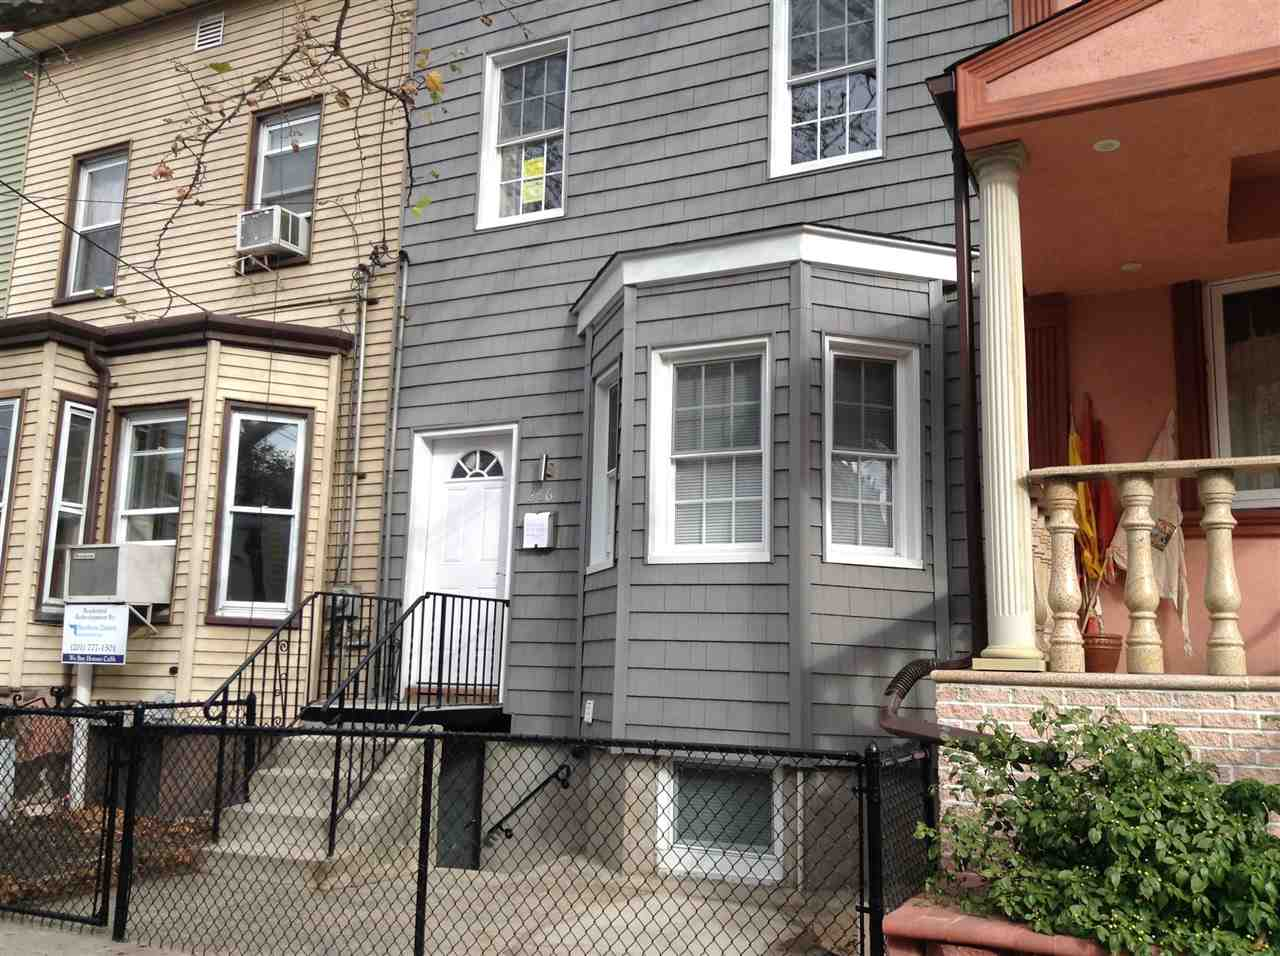 286 VIRGINIA AVE, JC, West Bergen, NJ 07304